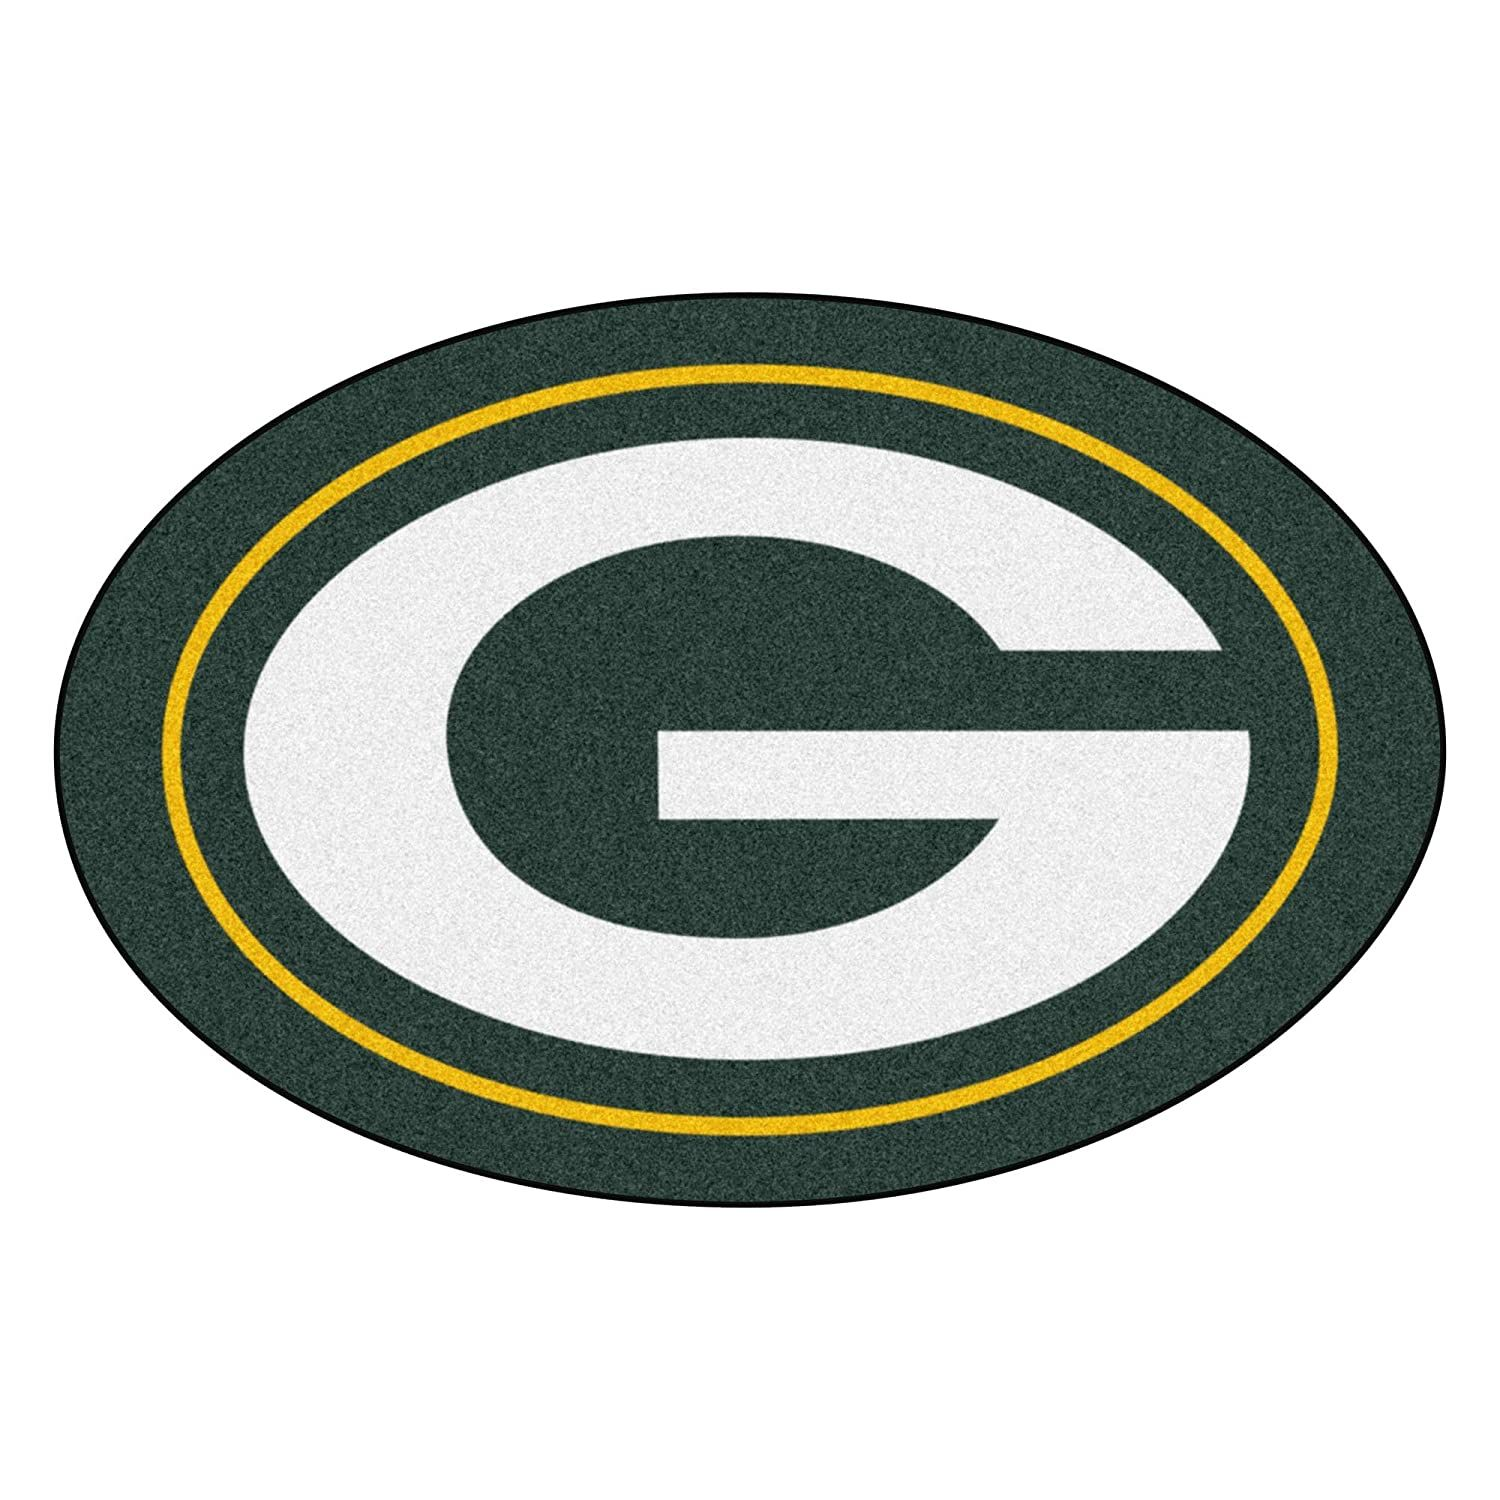 Fanmats 20970 Team Color 2 X 3 Nfl Green Bay Packers Mascot Mat Learn More By Visiting Th In 2020 Green Bay Packers Mascot Nfl Green Bay Green Bay Packers Colors